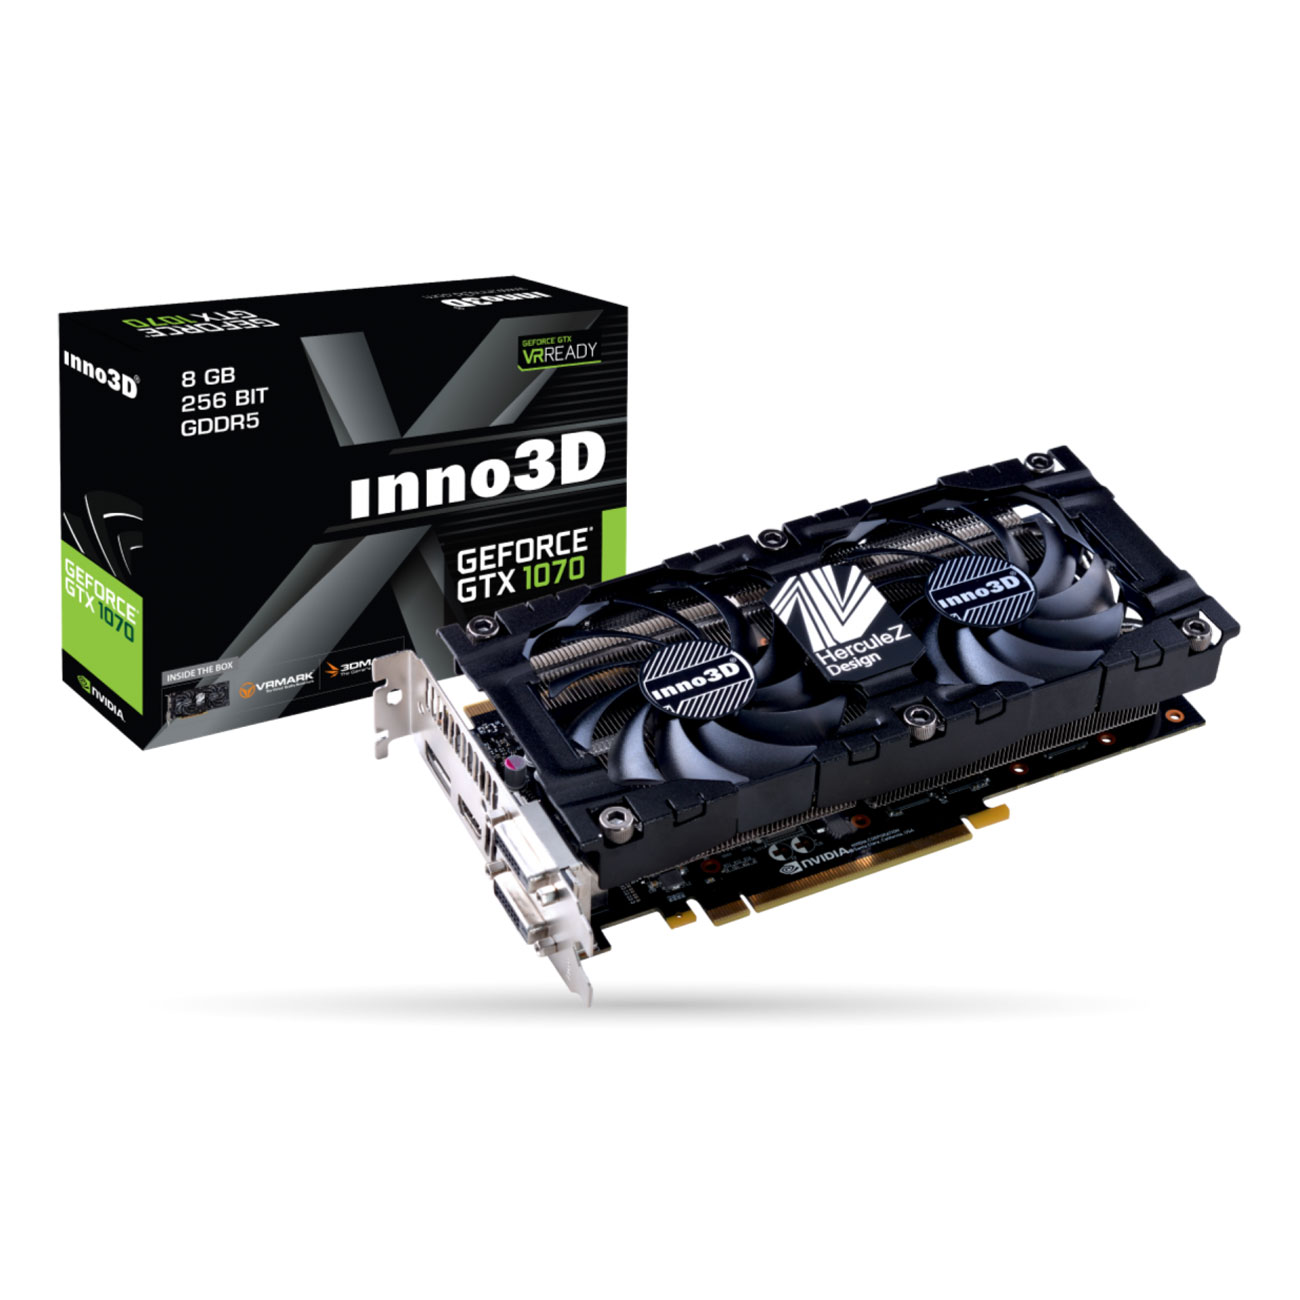 Carte graphique INNO3D GeForce GTX 1070 X2 V4 8192 Mo DVI/HDMI/DisplayPort - PCI Express (NVIDIA GeForce avec CUDA GTX 1070)